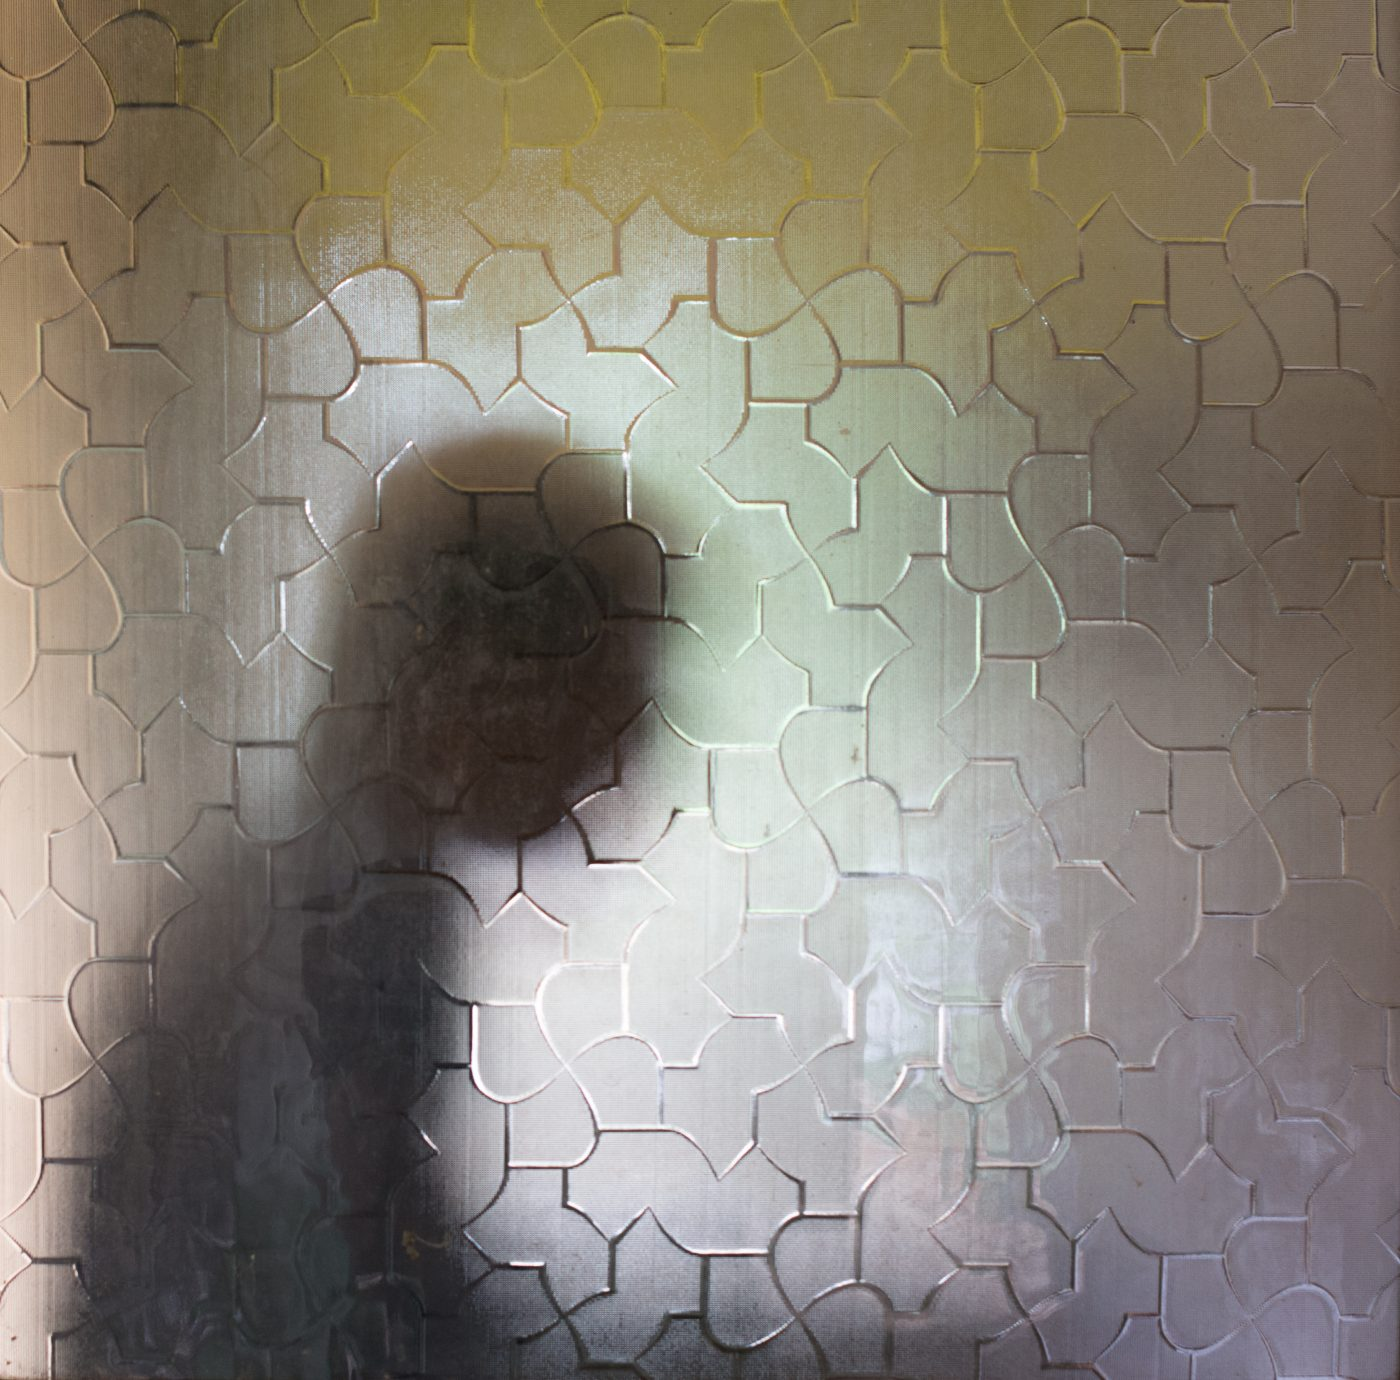 The silhouette of a patient in the general psychiatric ward is seen through a glass door. He was so kind to open the door for everyone passing through. When we were passing by a couple of hours later he was still manning the door.